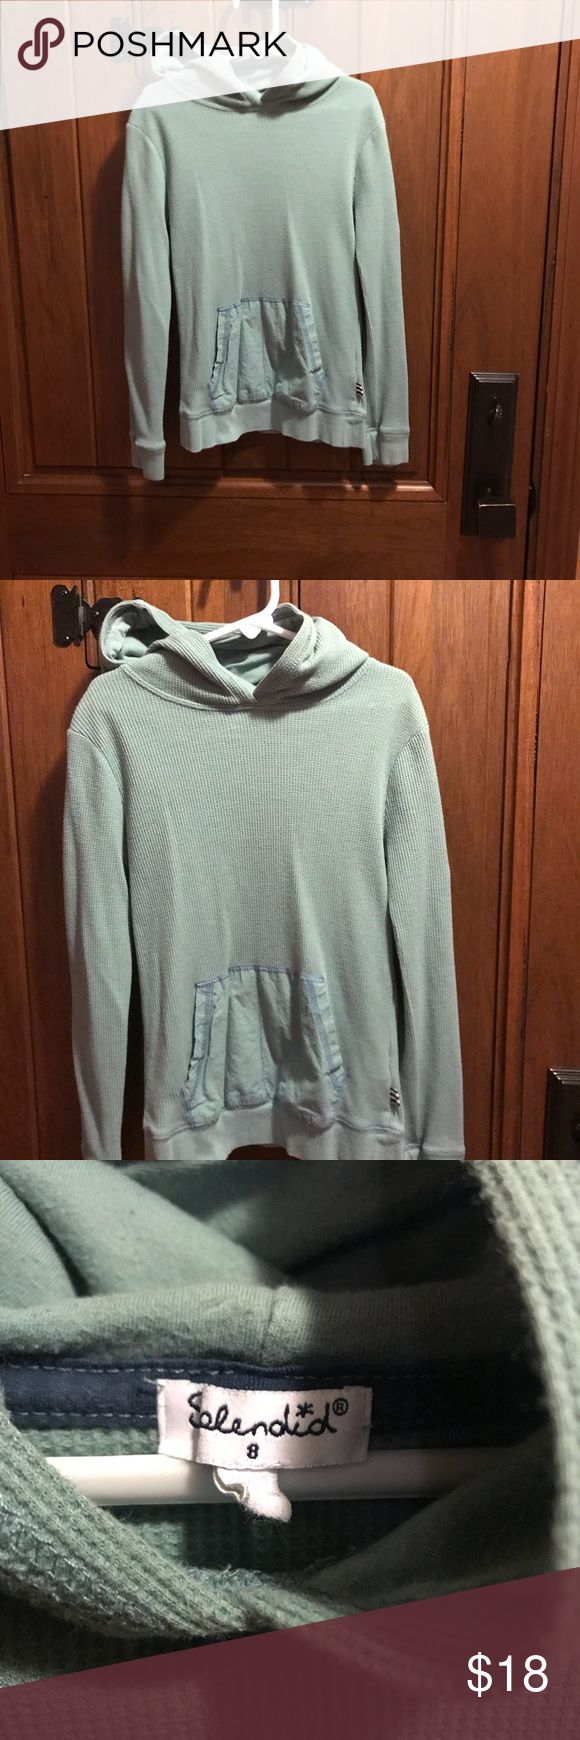 Splendid boys size 8 thermal hoodie w/pockets Splendid boys size 8 thermal hoodie w/pockets -  in excellent, like new condition - worn a couple of times at most - kind of like a teal color Splendid Shirts & Tops Sweatshirts & Hoodies